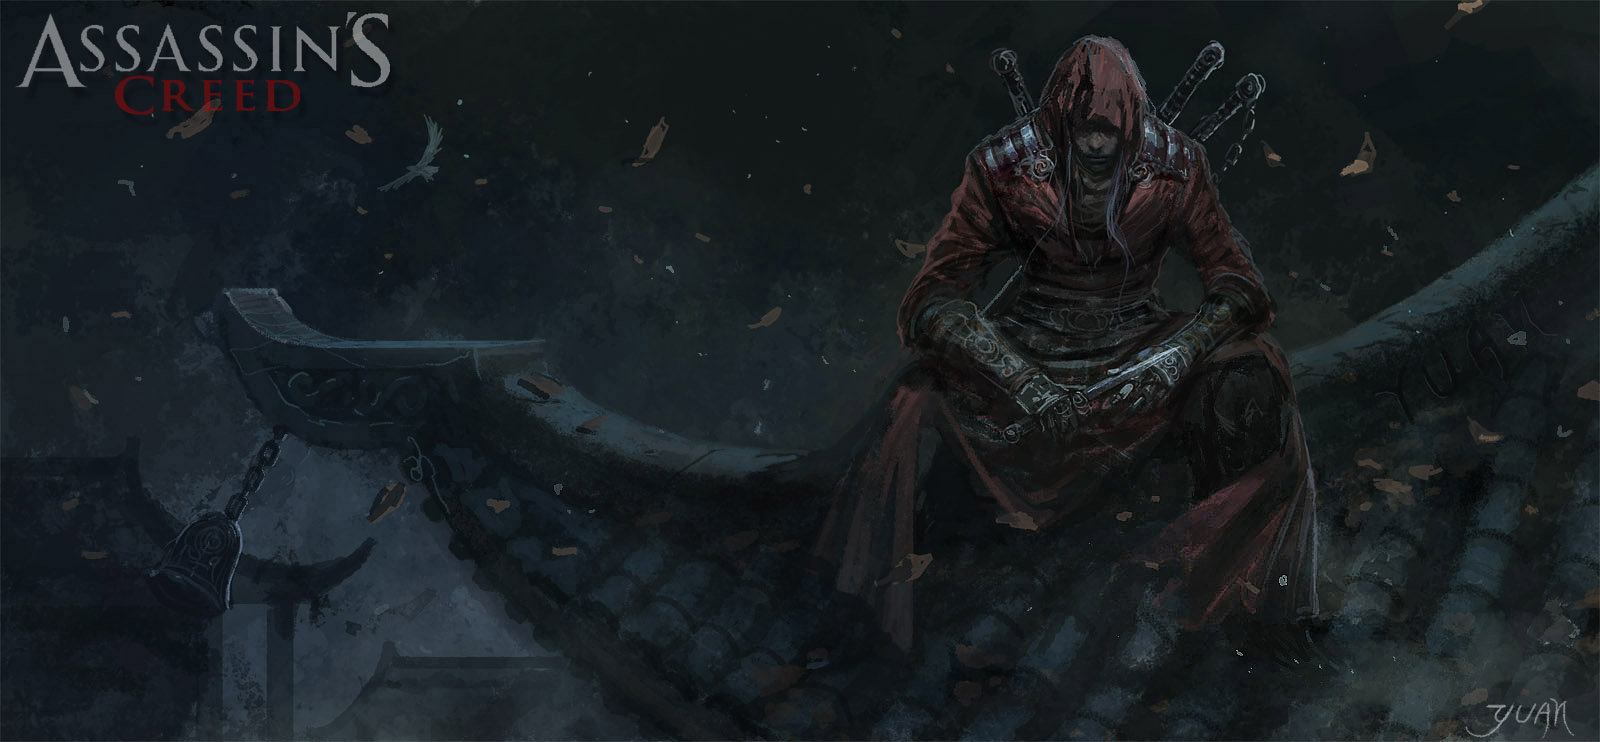 Assassin S Creed Another Tale Chapter 7 By Chaoyuanxu On Deviantart